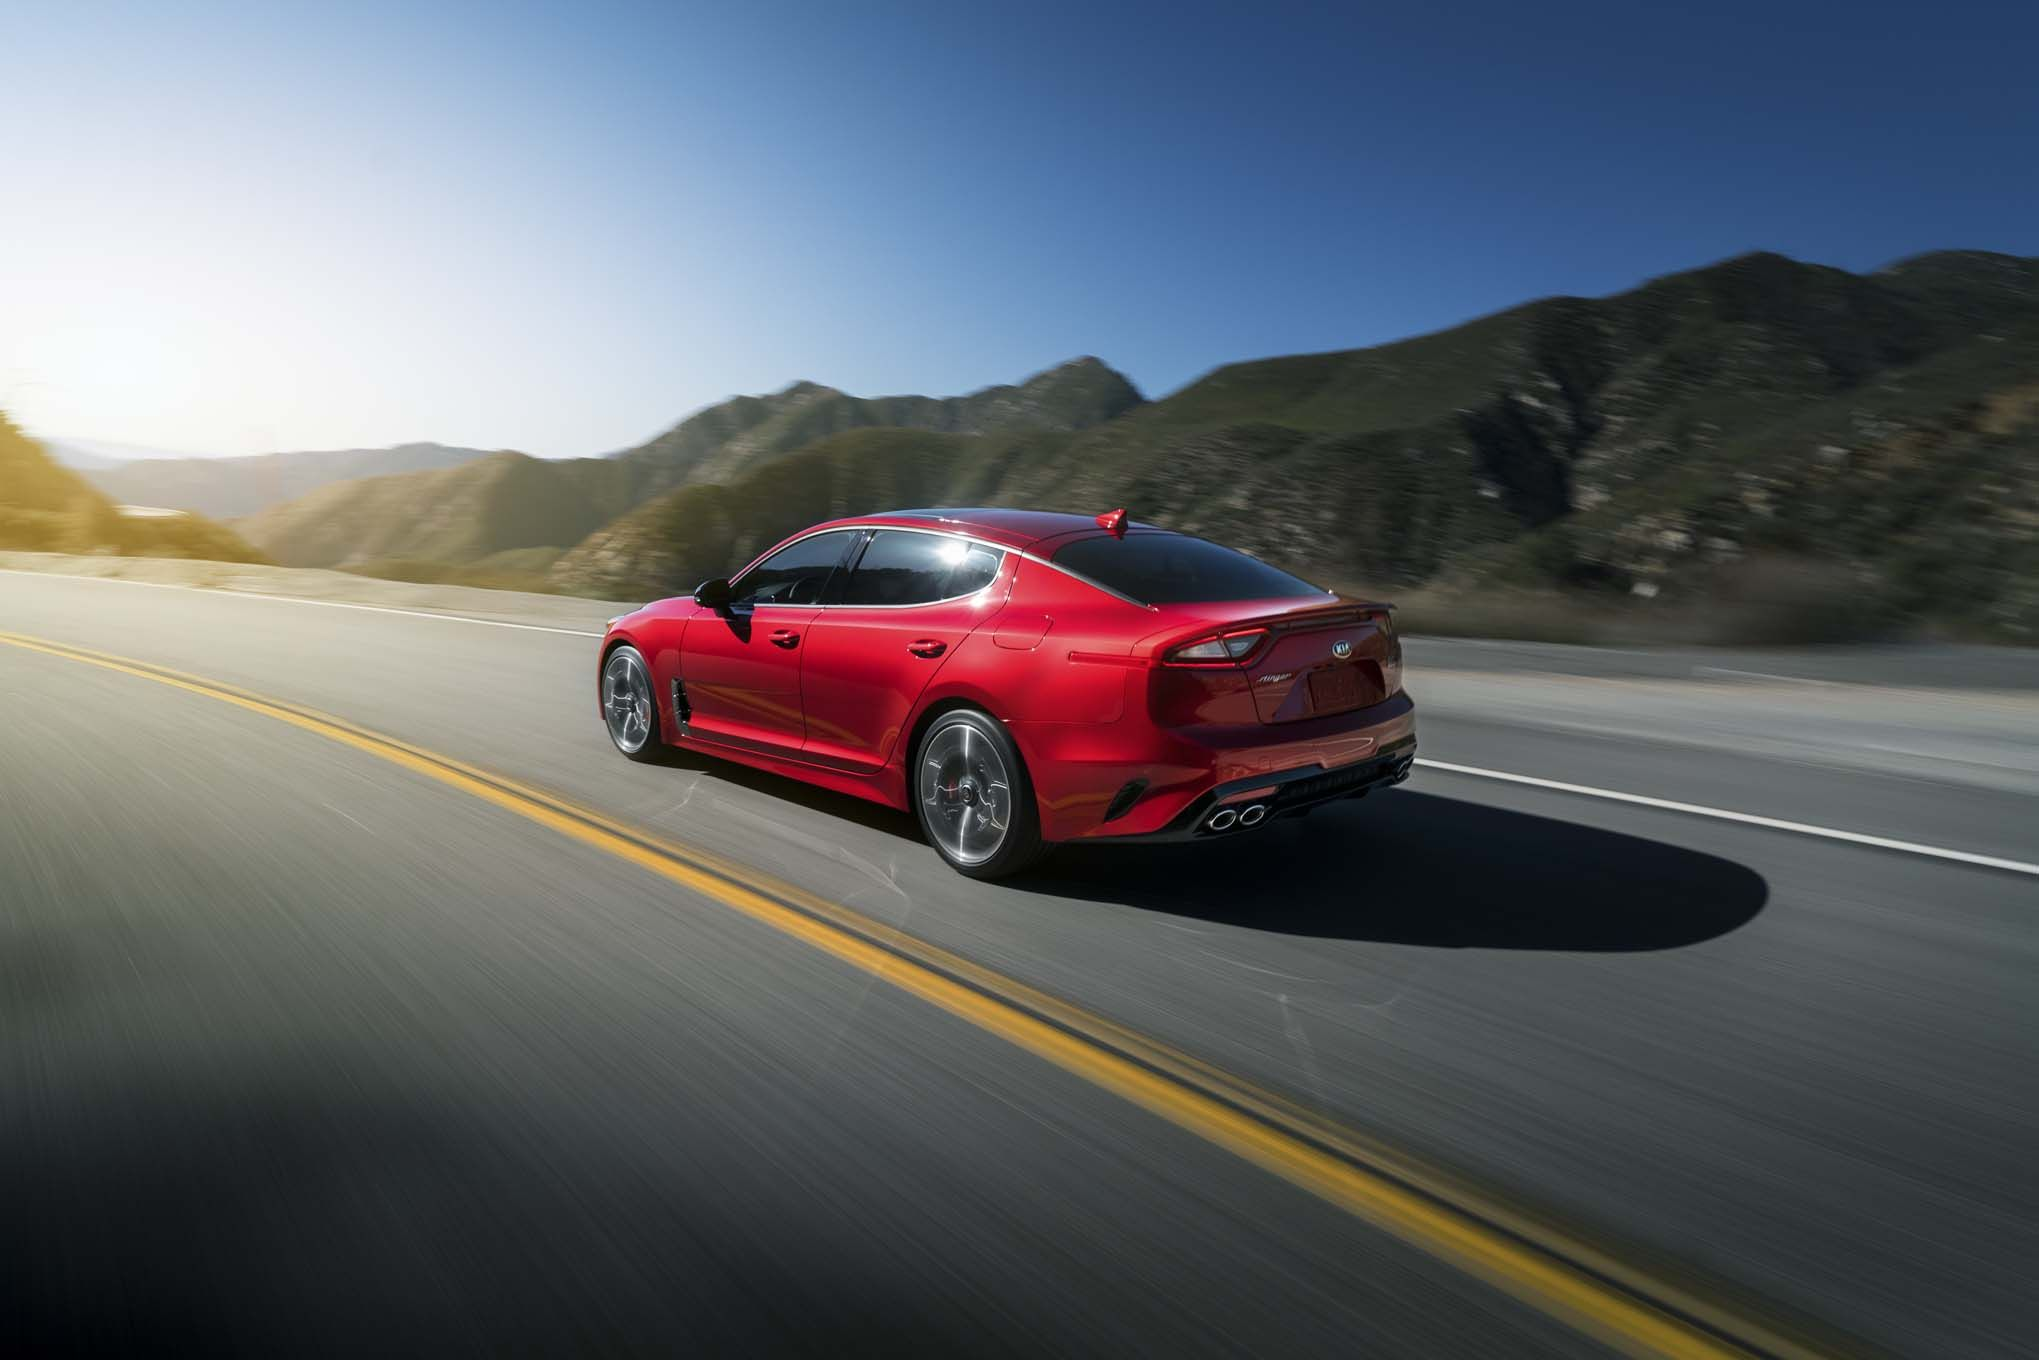 2018-Kia-Stinger-GT-rear-three-quarter-in-motion-02.jpg (2039×1360)